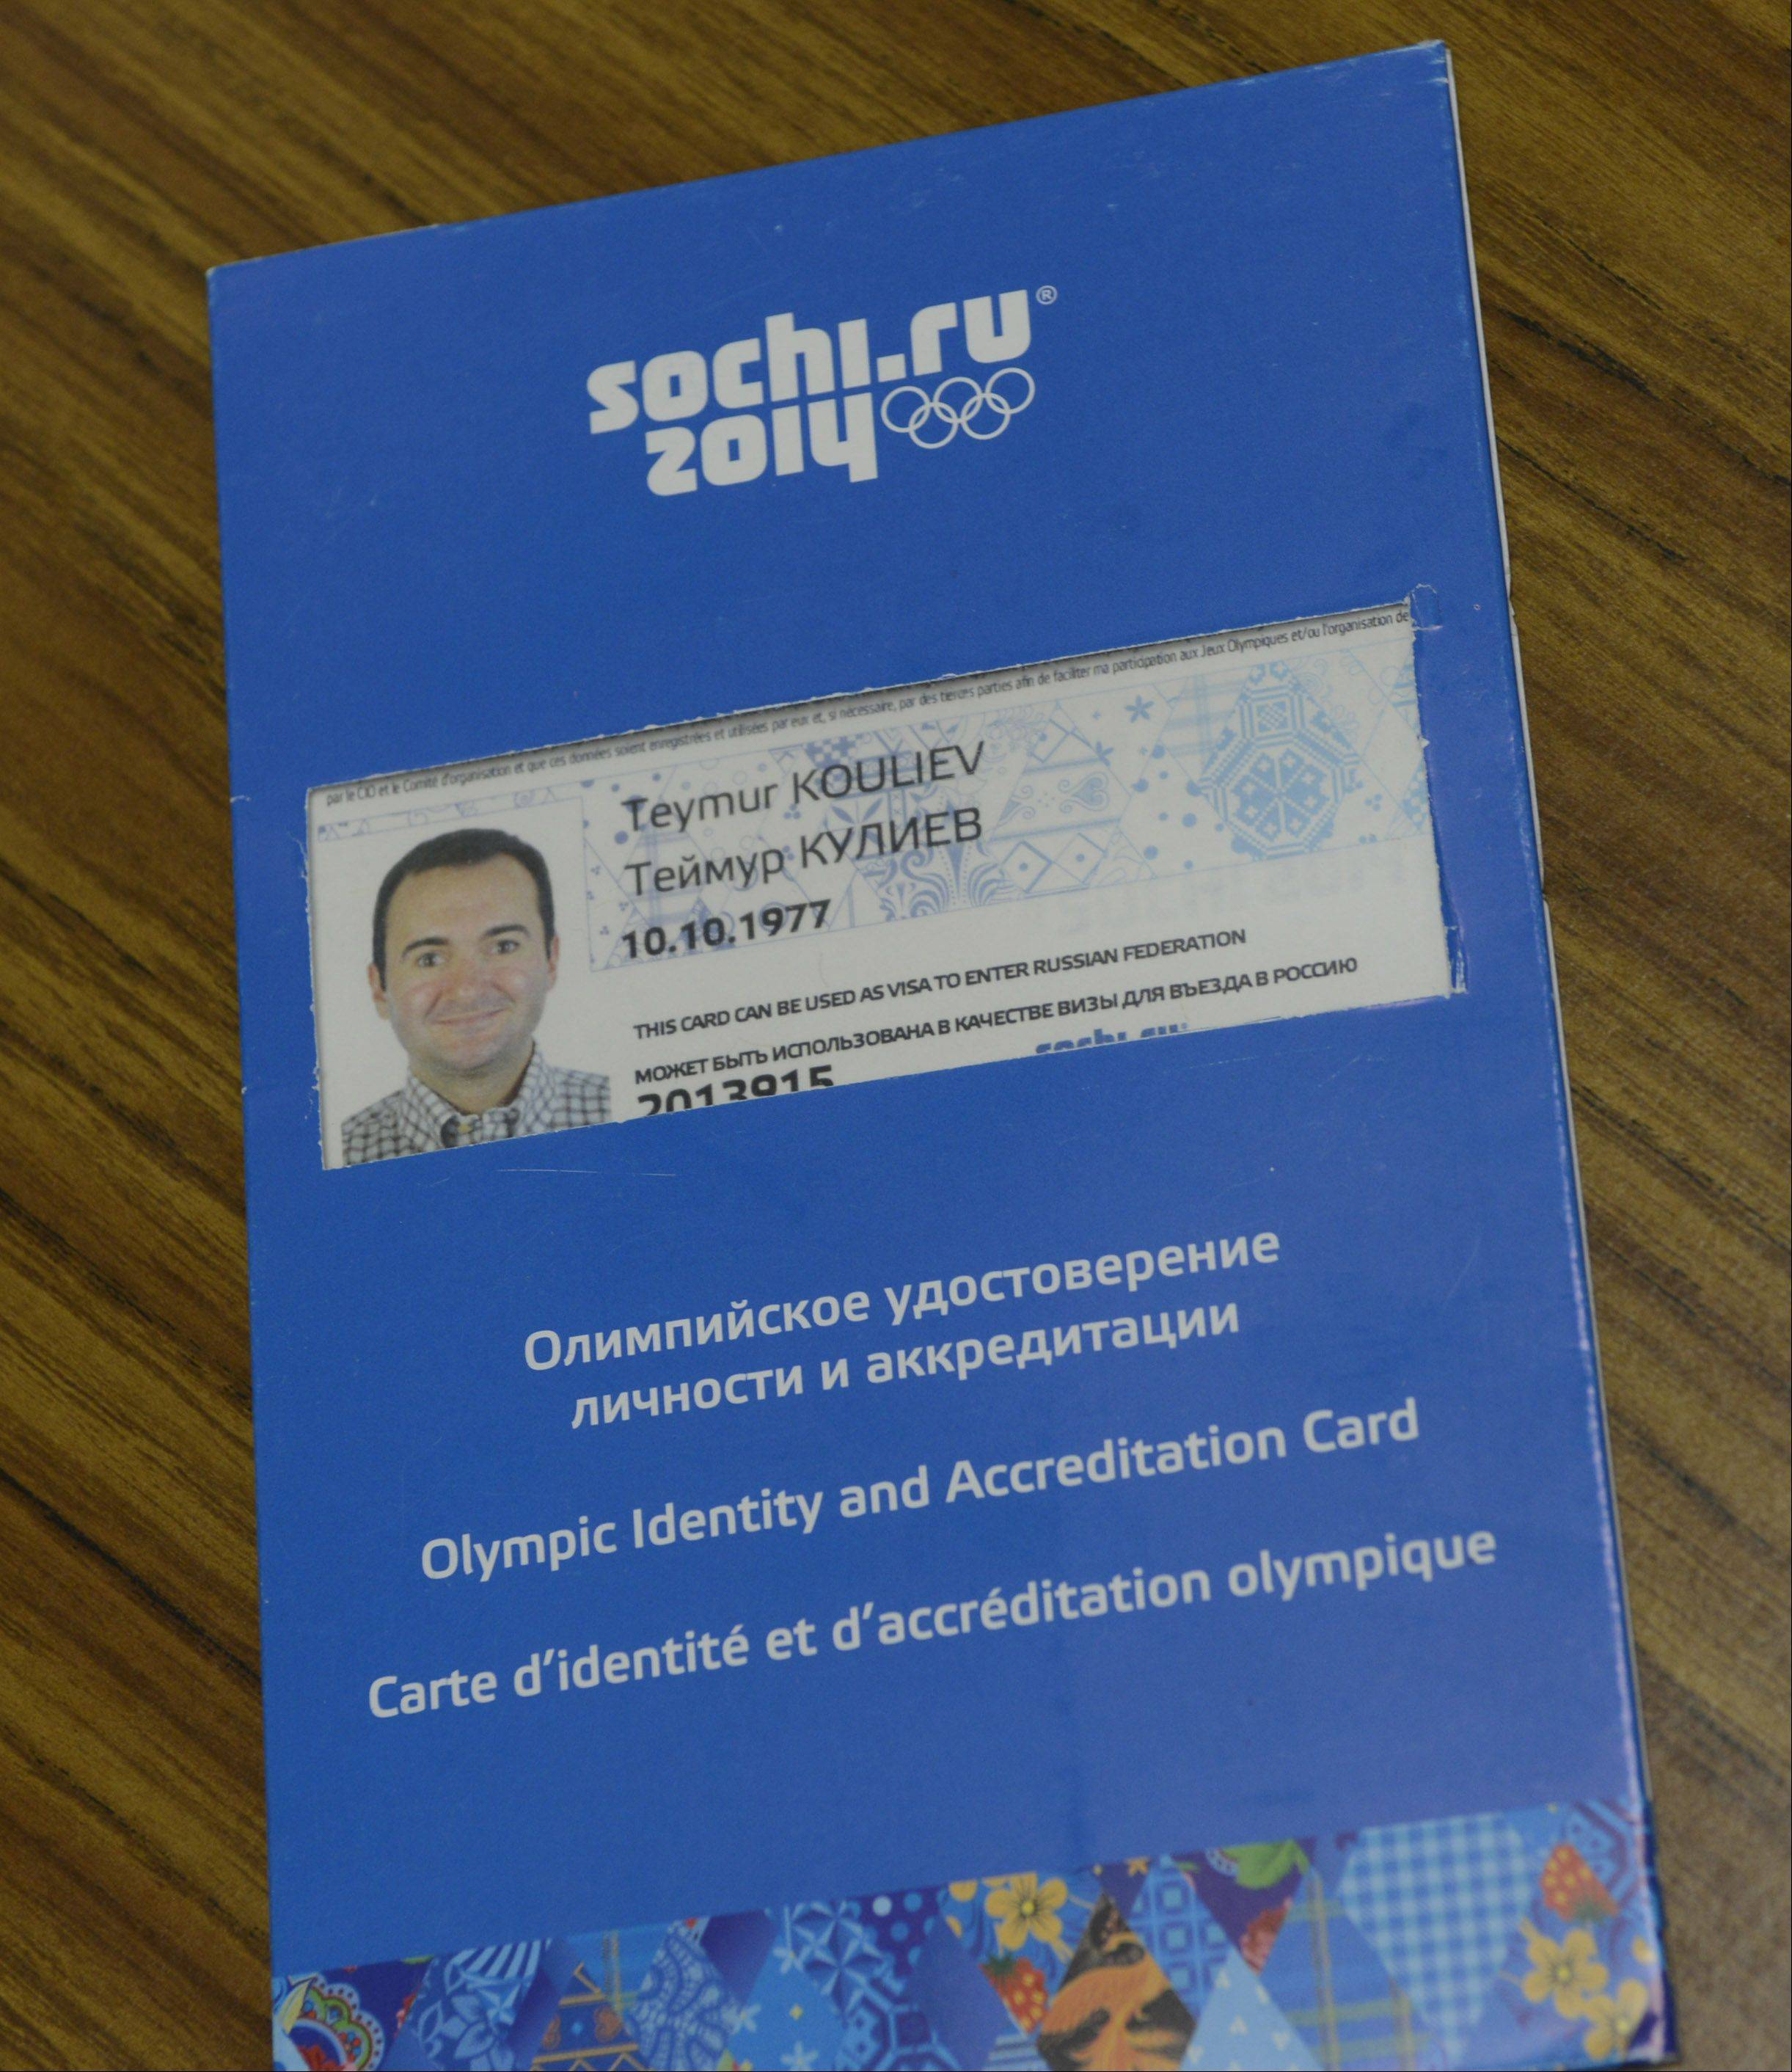 This credential gives Lake County Dr. Timur Kouliev access to the 2014 Olympics in Sochi, Russia, where he serves as a medical coordinator. As a boy growing up in Moscow, Kouliev used to vacation with his family in Sochi.